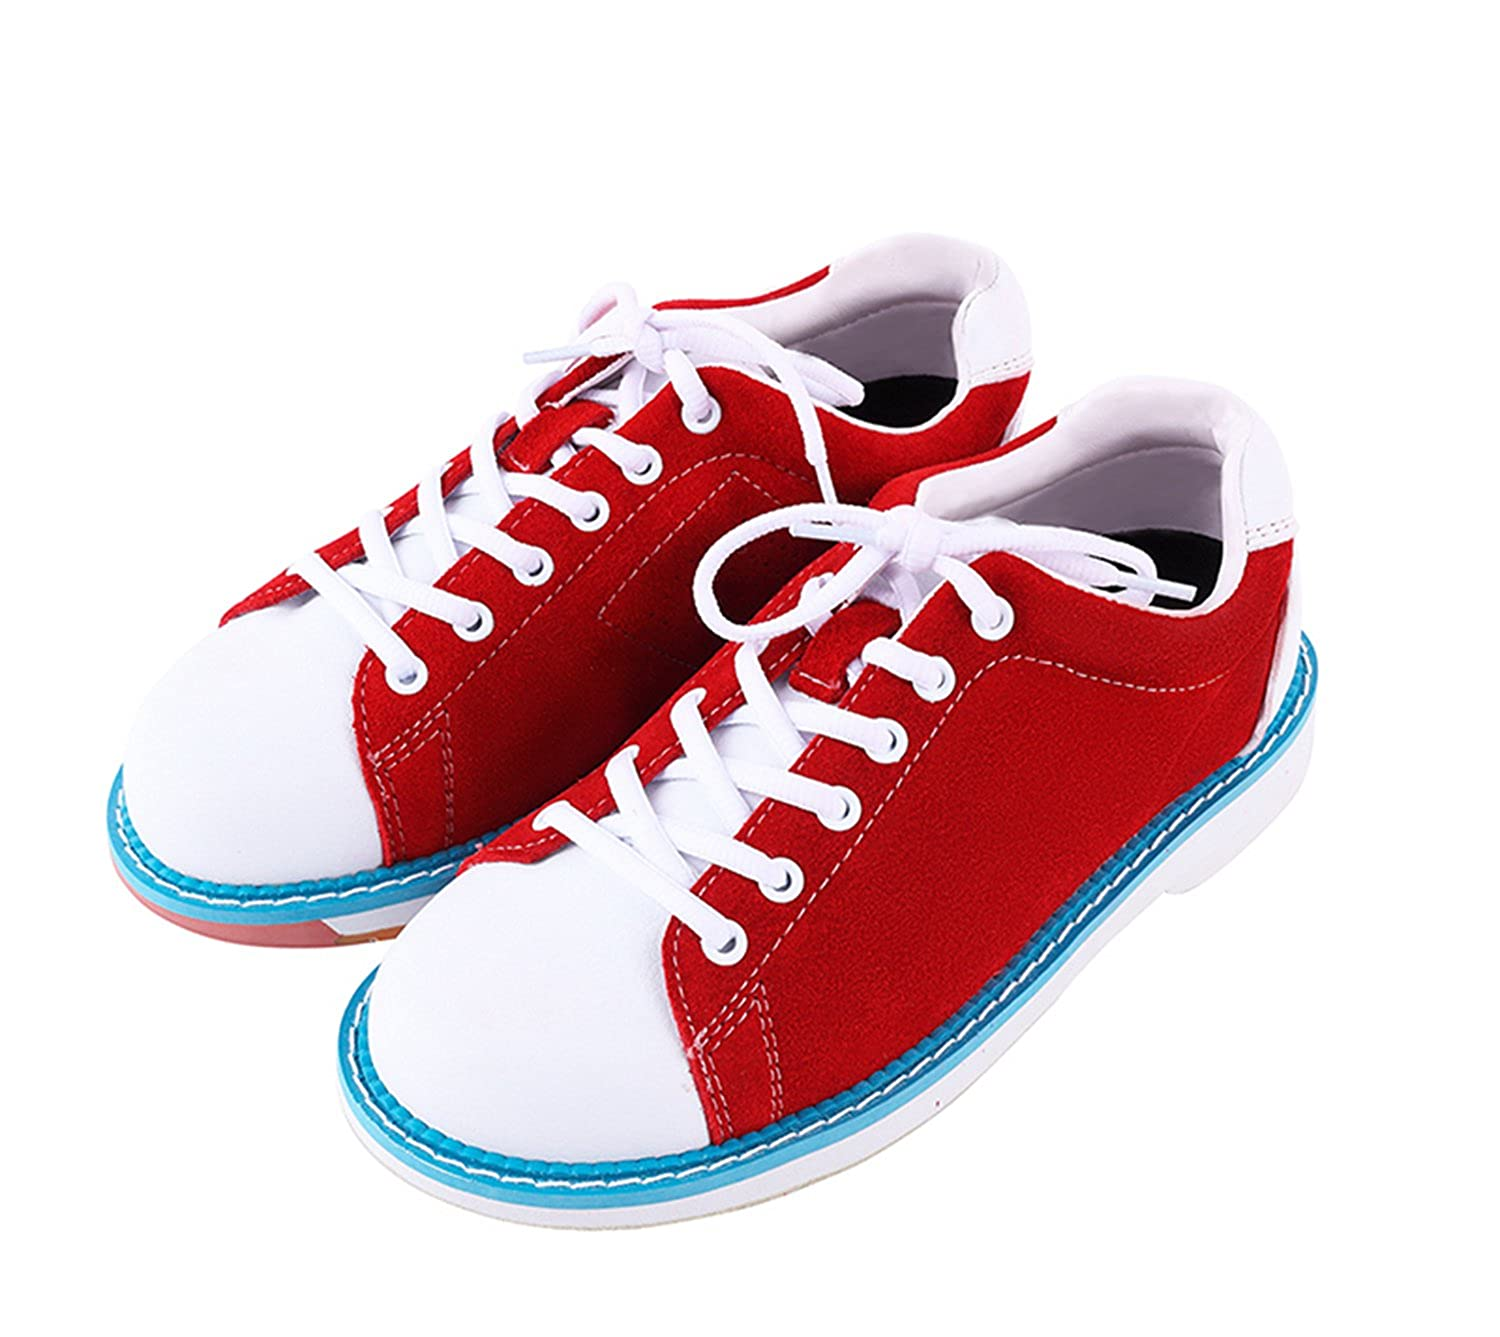 S&F Women's Bowling Shoes Skidproof Sole Breathable Sneakers for Women SF